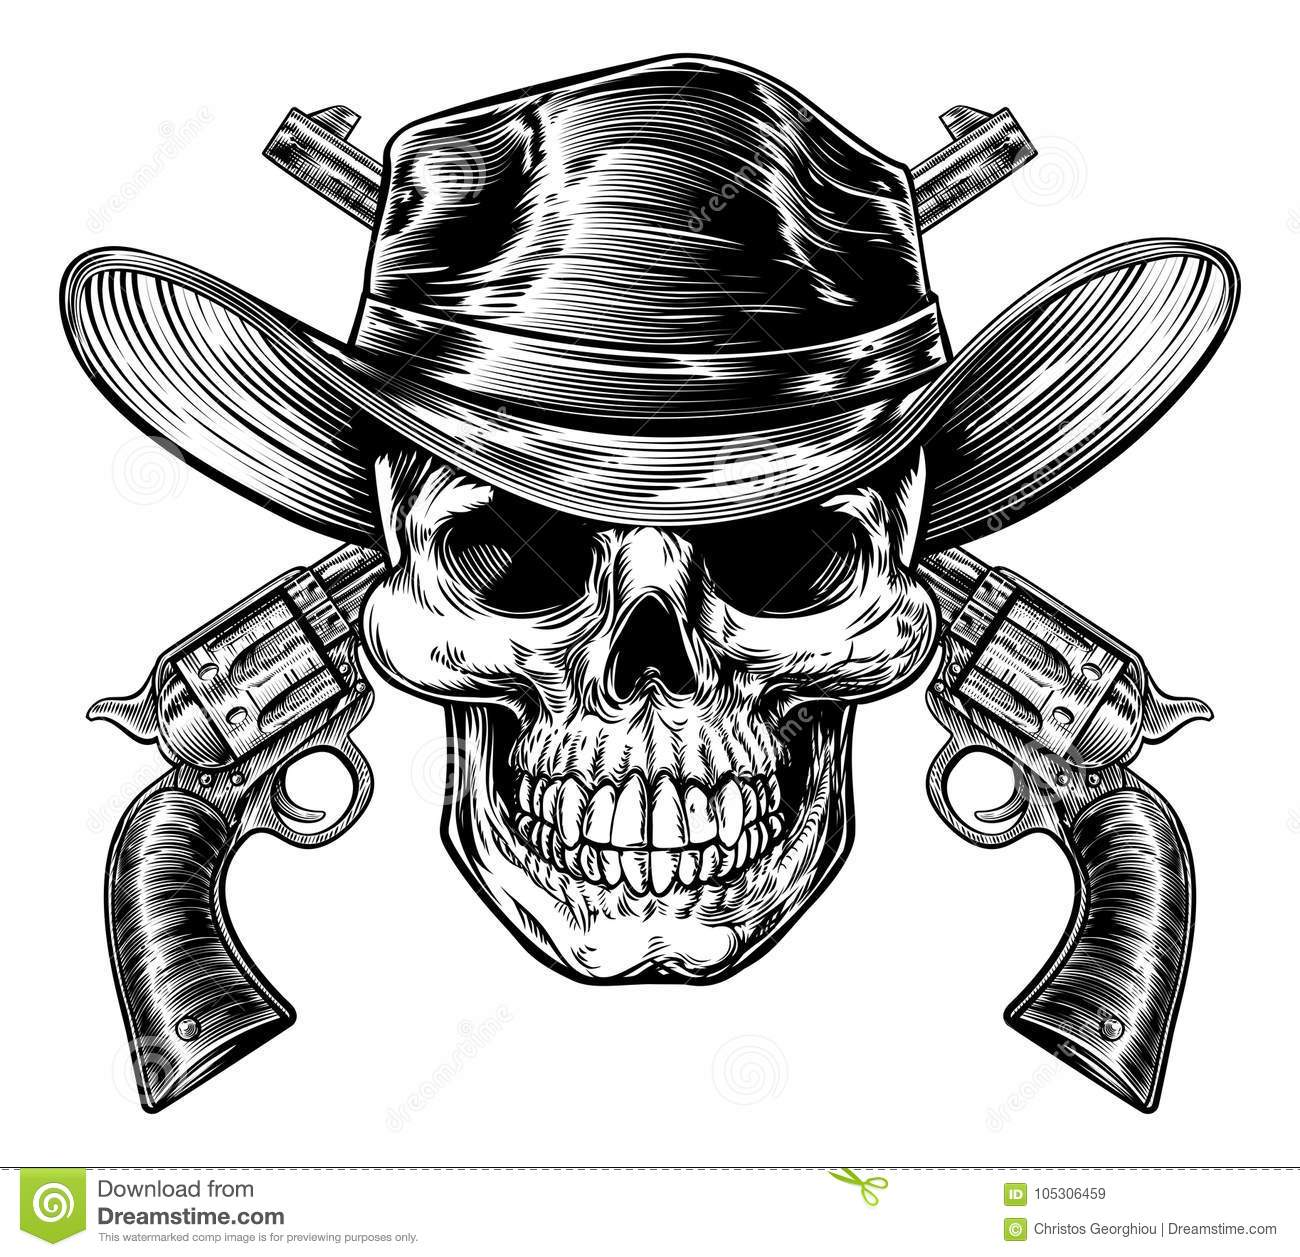 Drawings Easy Skull With Guns: Cowboy Skull And Pistols Stock Vector. Illustration Of